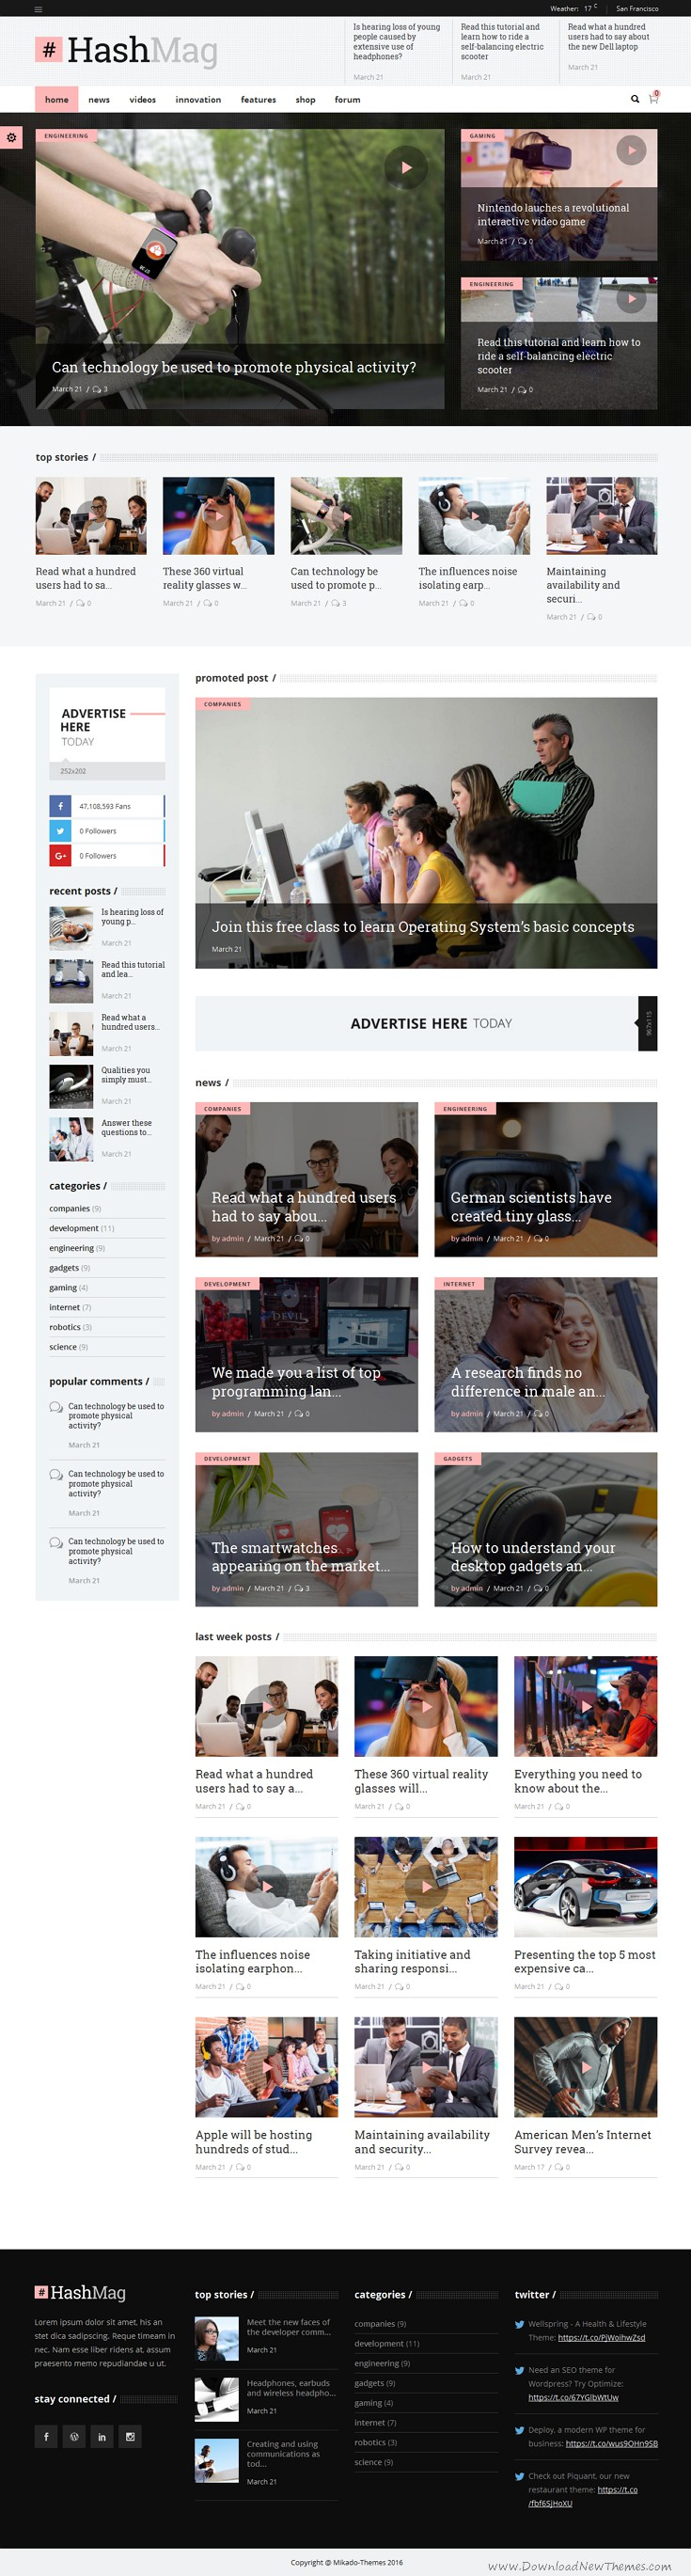 HashMag is new premium WordPress theme for high-end Digital #Video #Magazine or newspapers #website. Download Now!